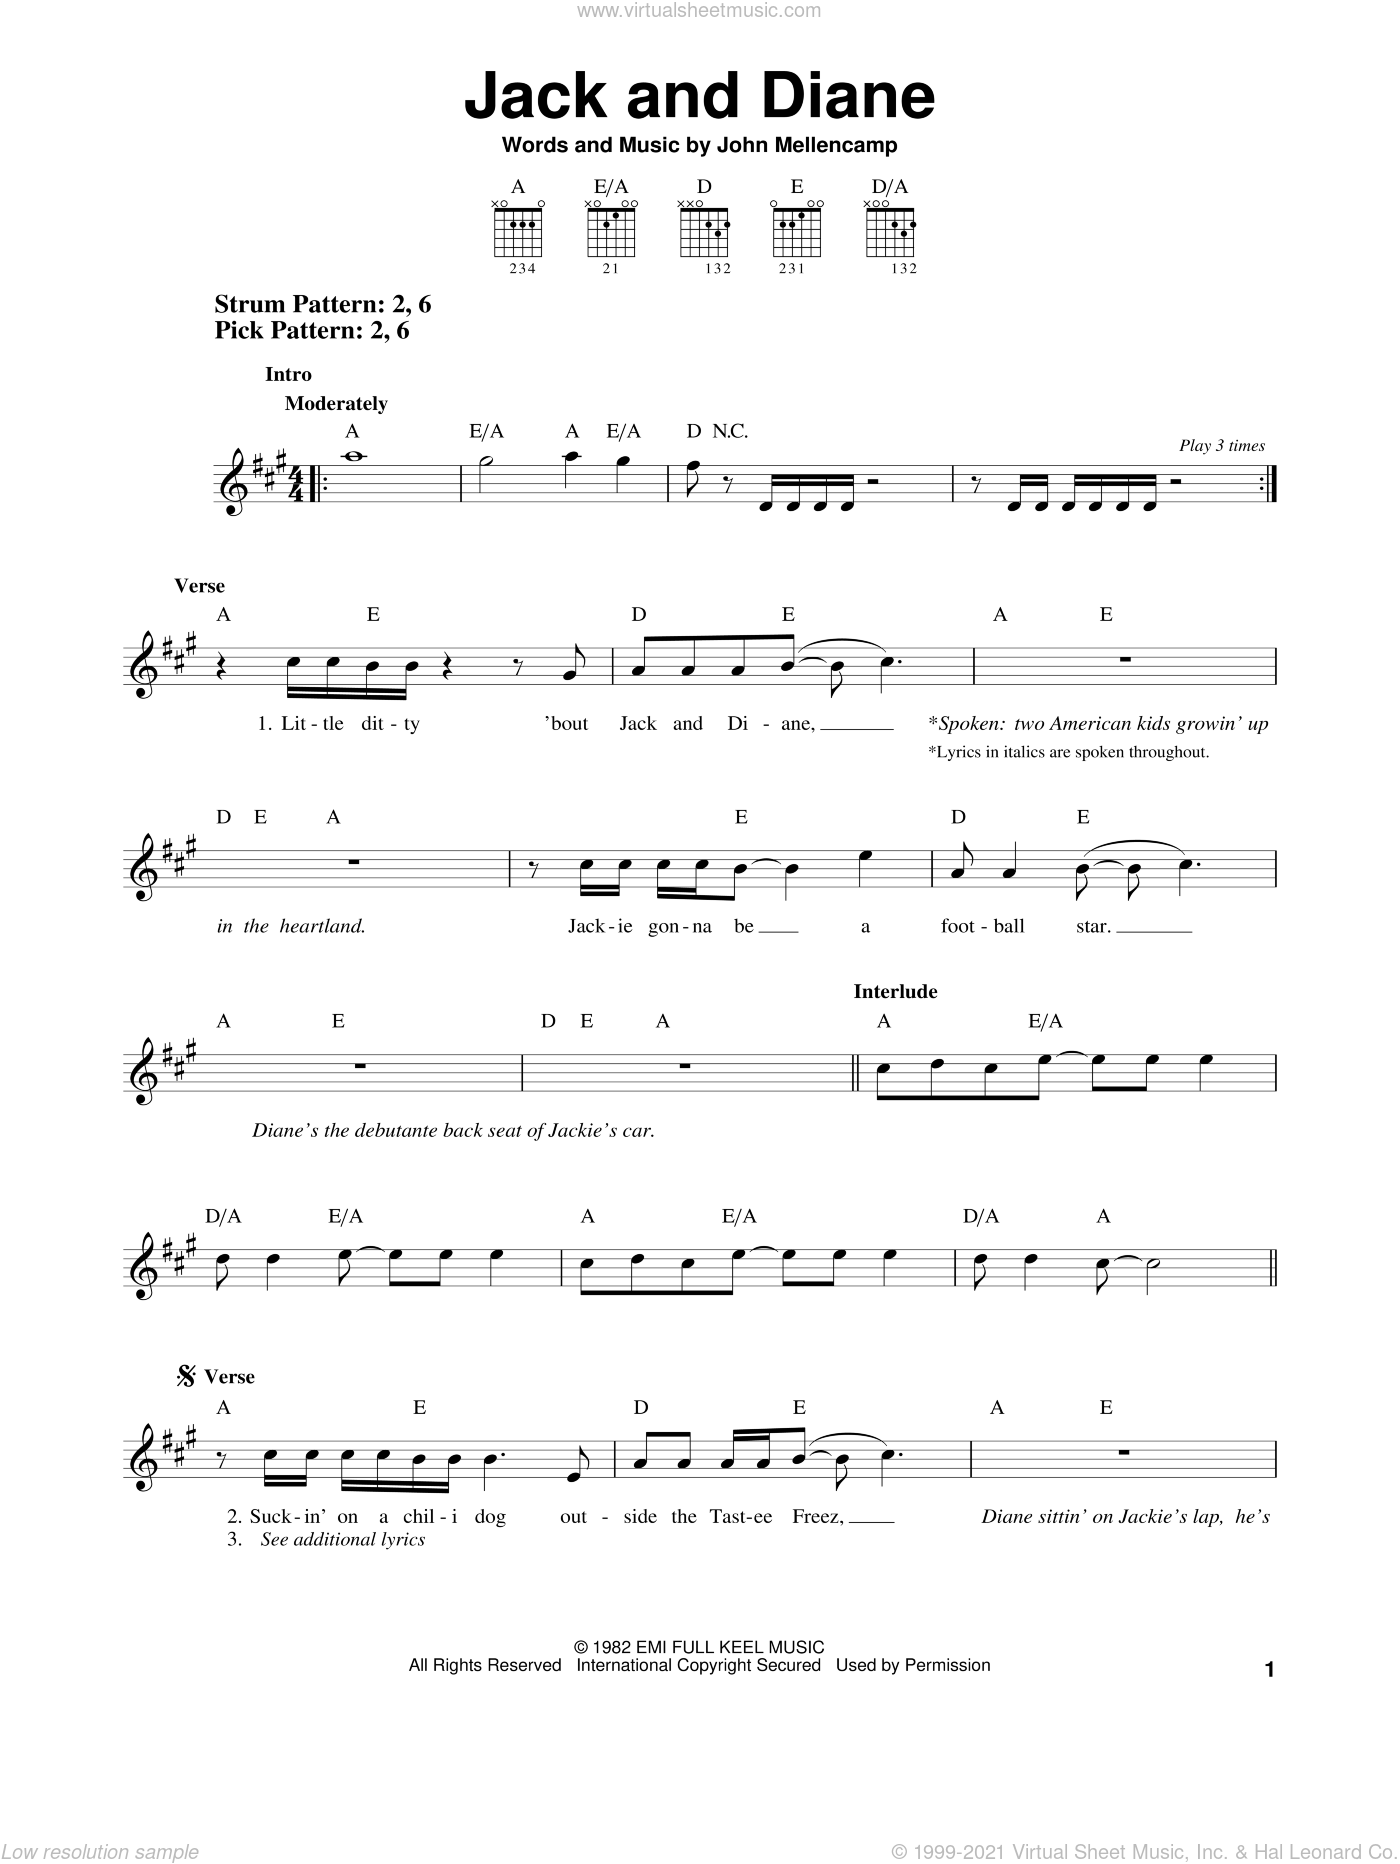 Jack And Diane sheet music for guitar solo (chords) by John Mellencamp